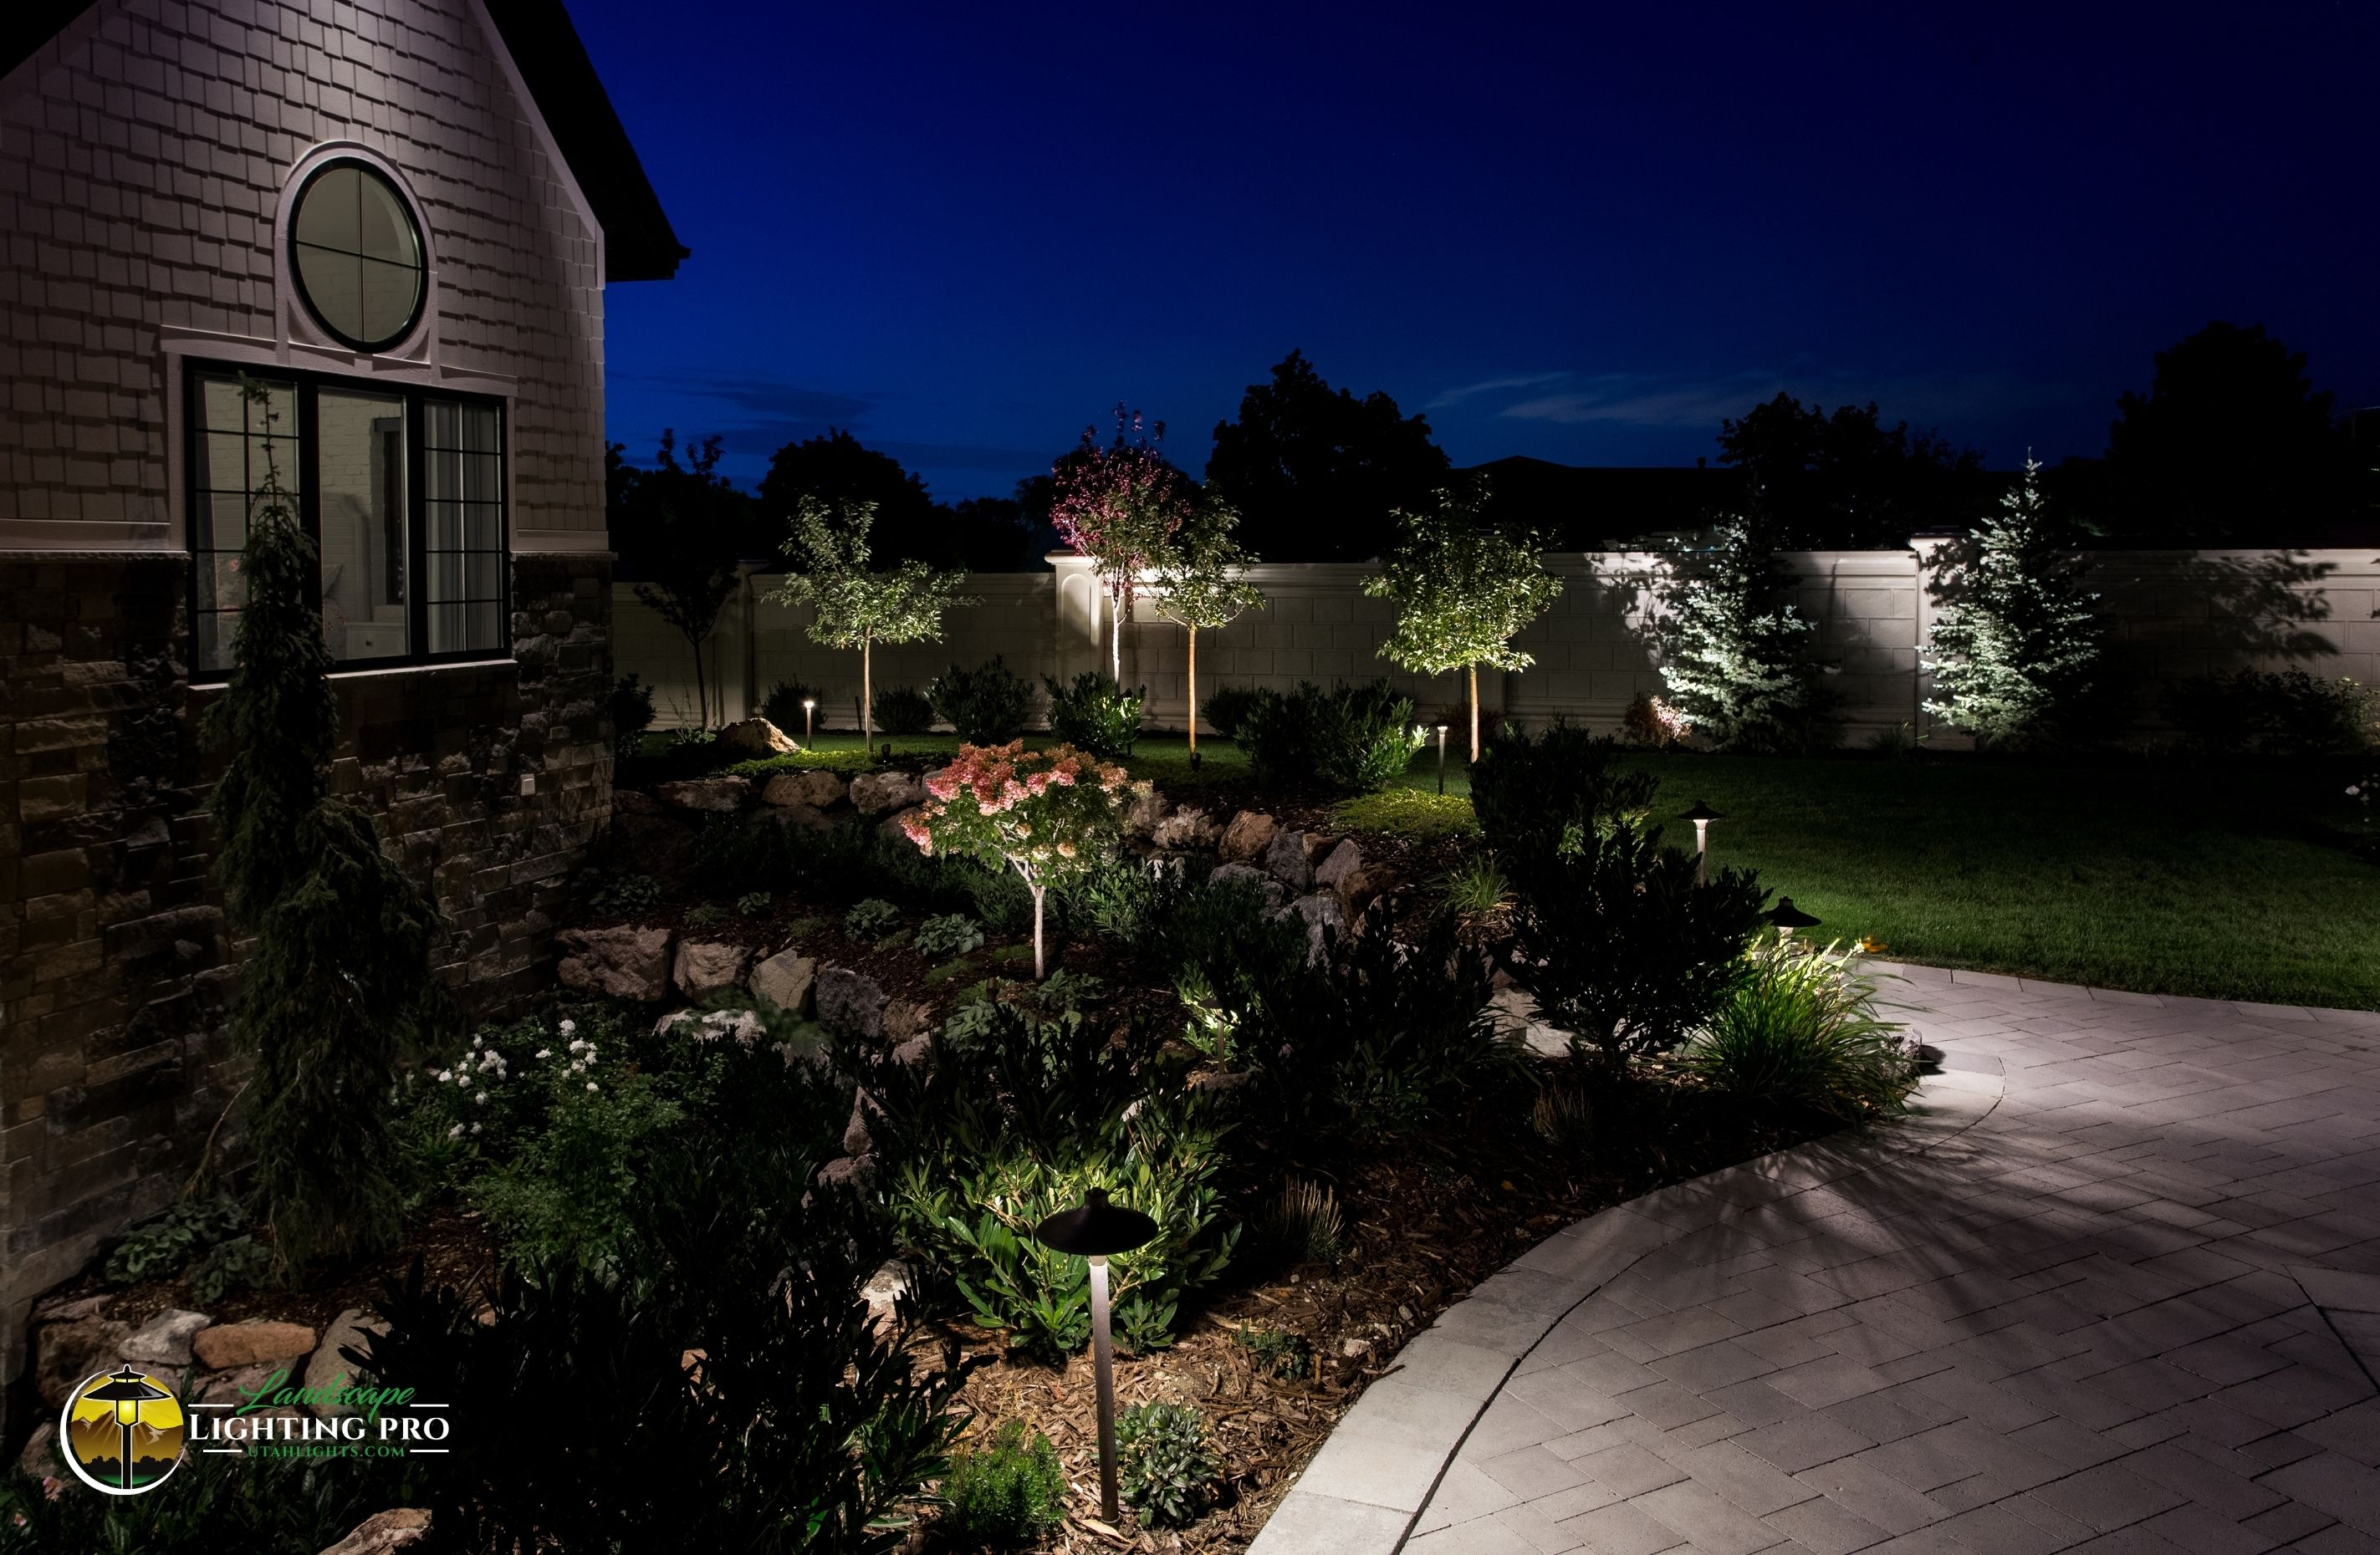 outdoor-lighting-system-pathway